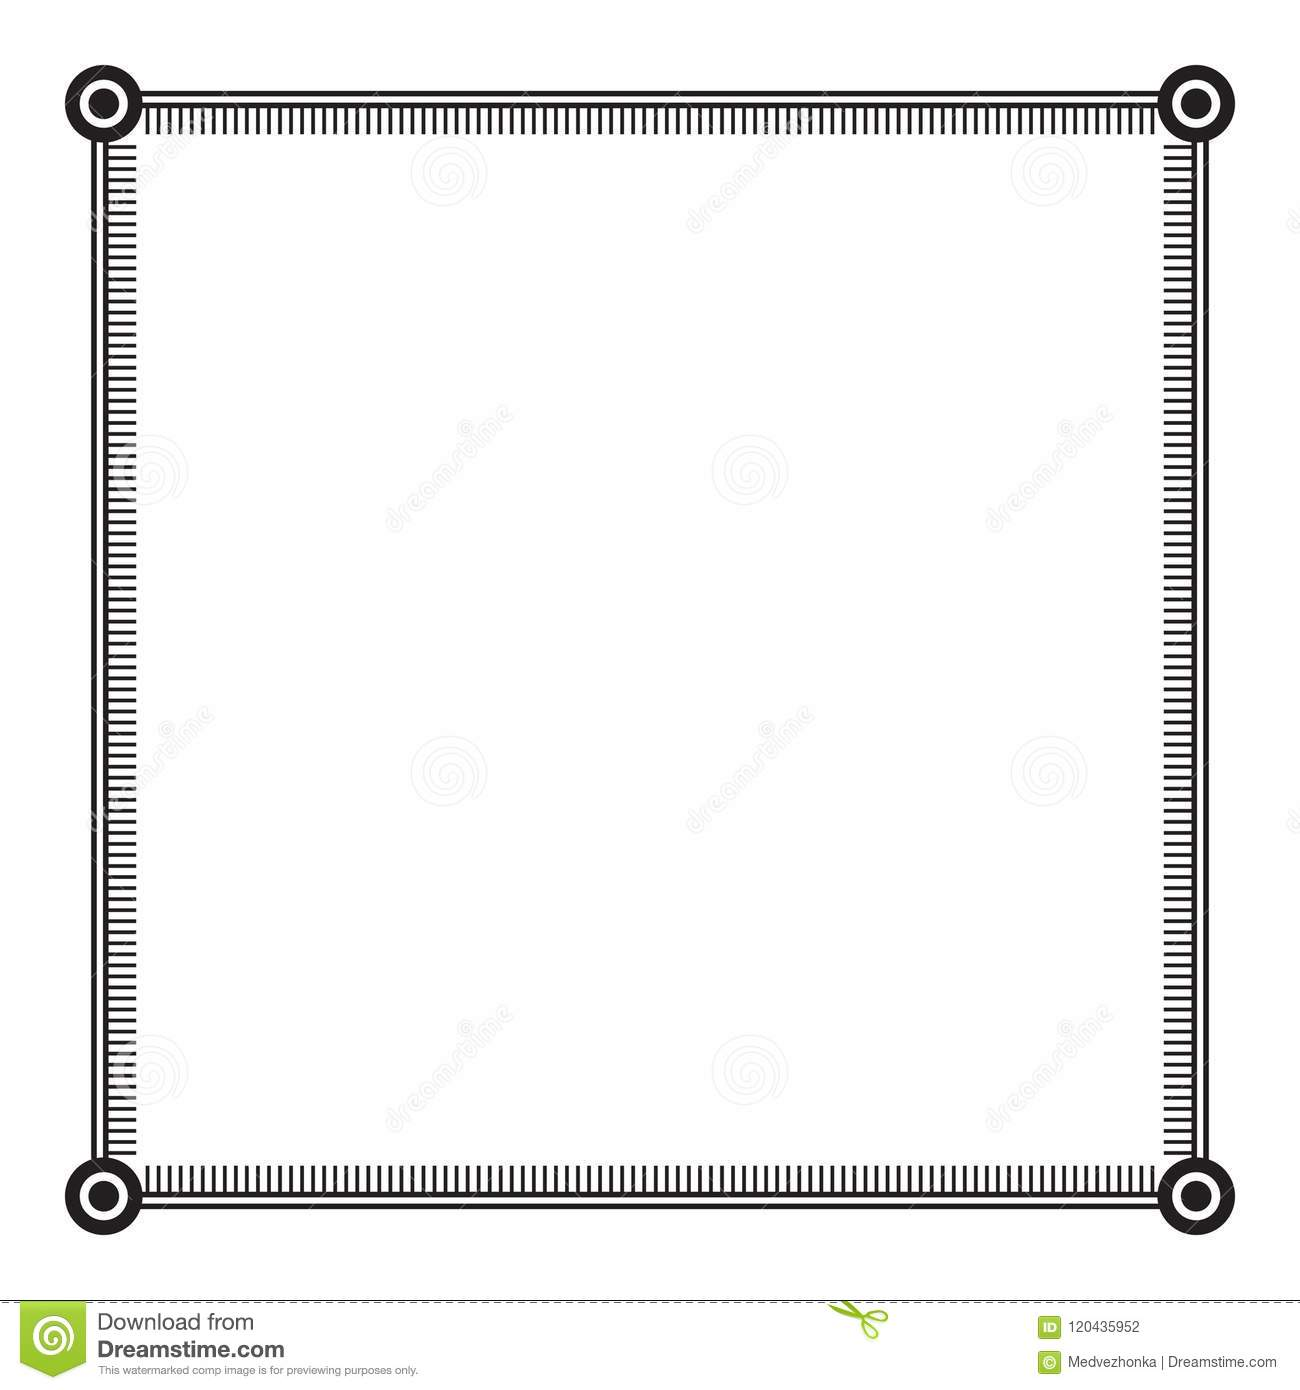 Black And White Square Frame With Simple Ornament. Stock Vector ...